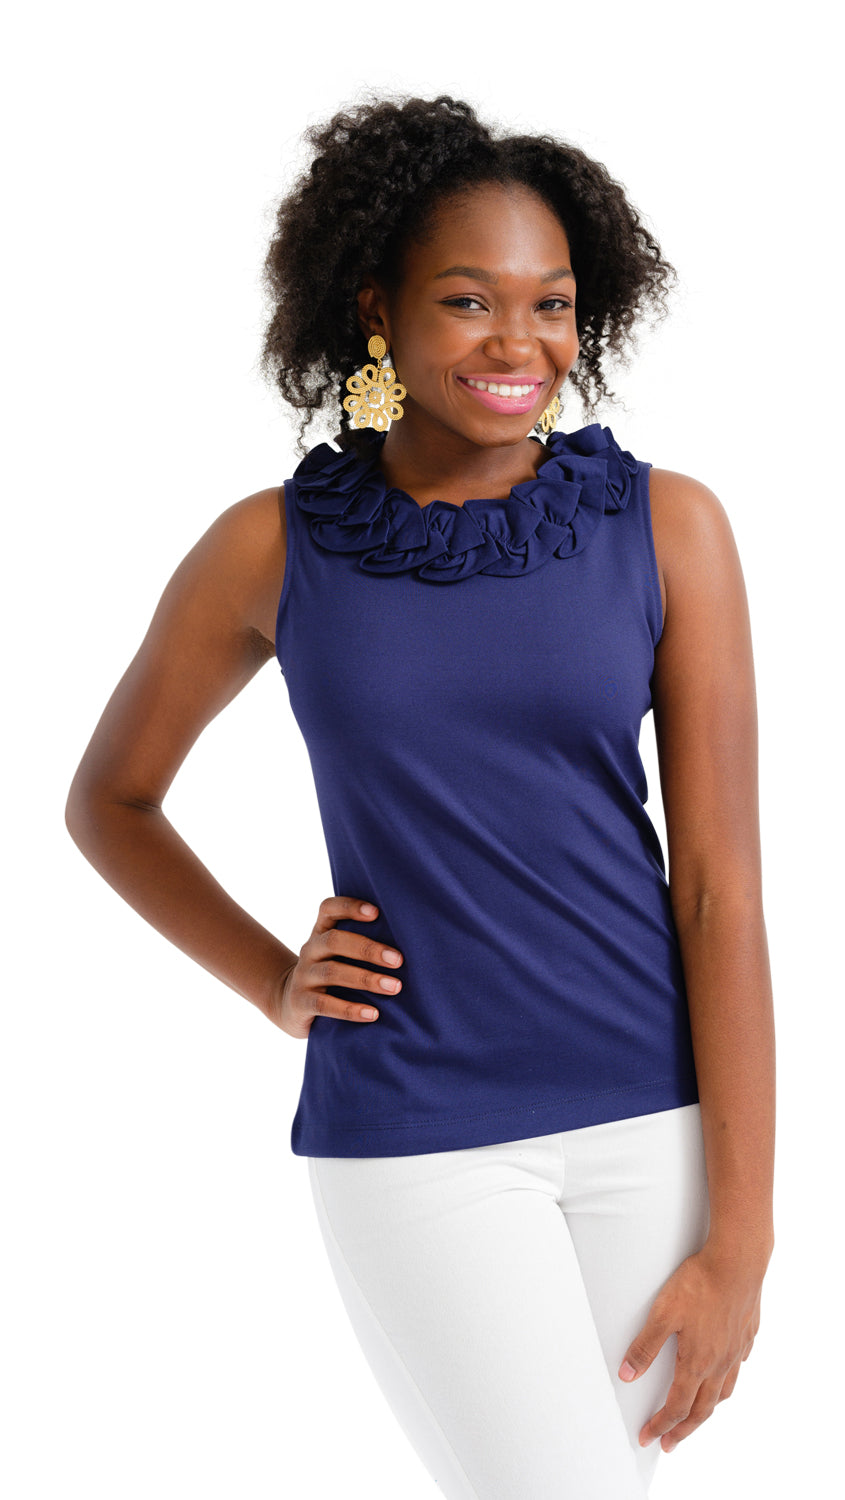 Cricket Top Sleeveless - Navy